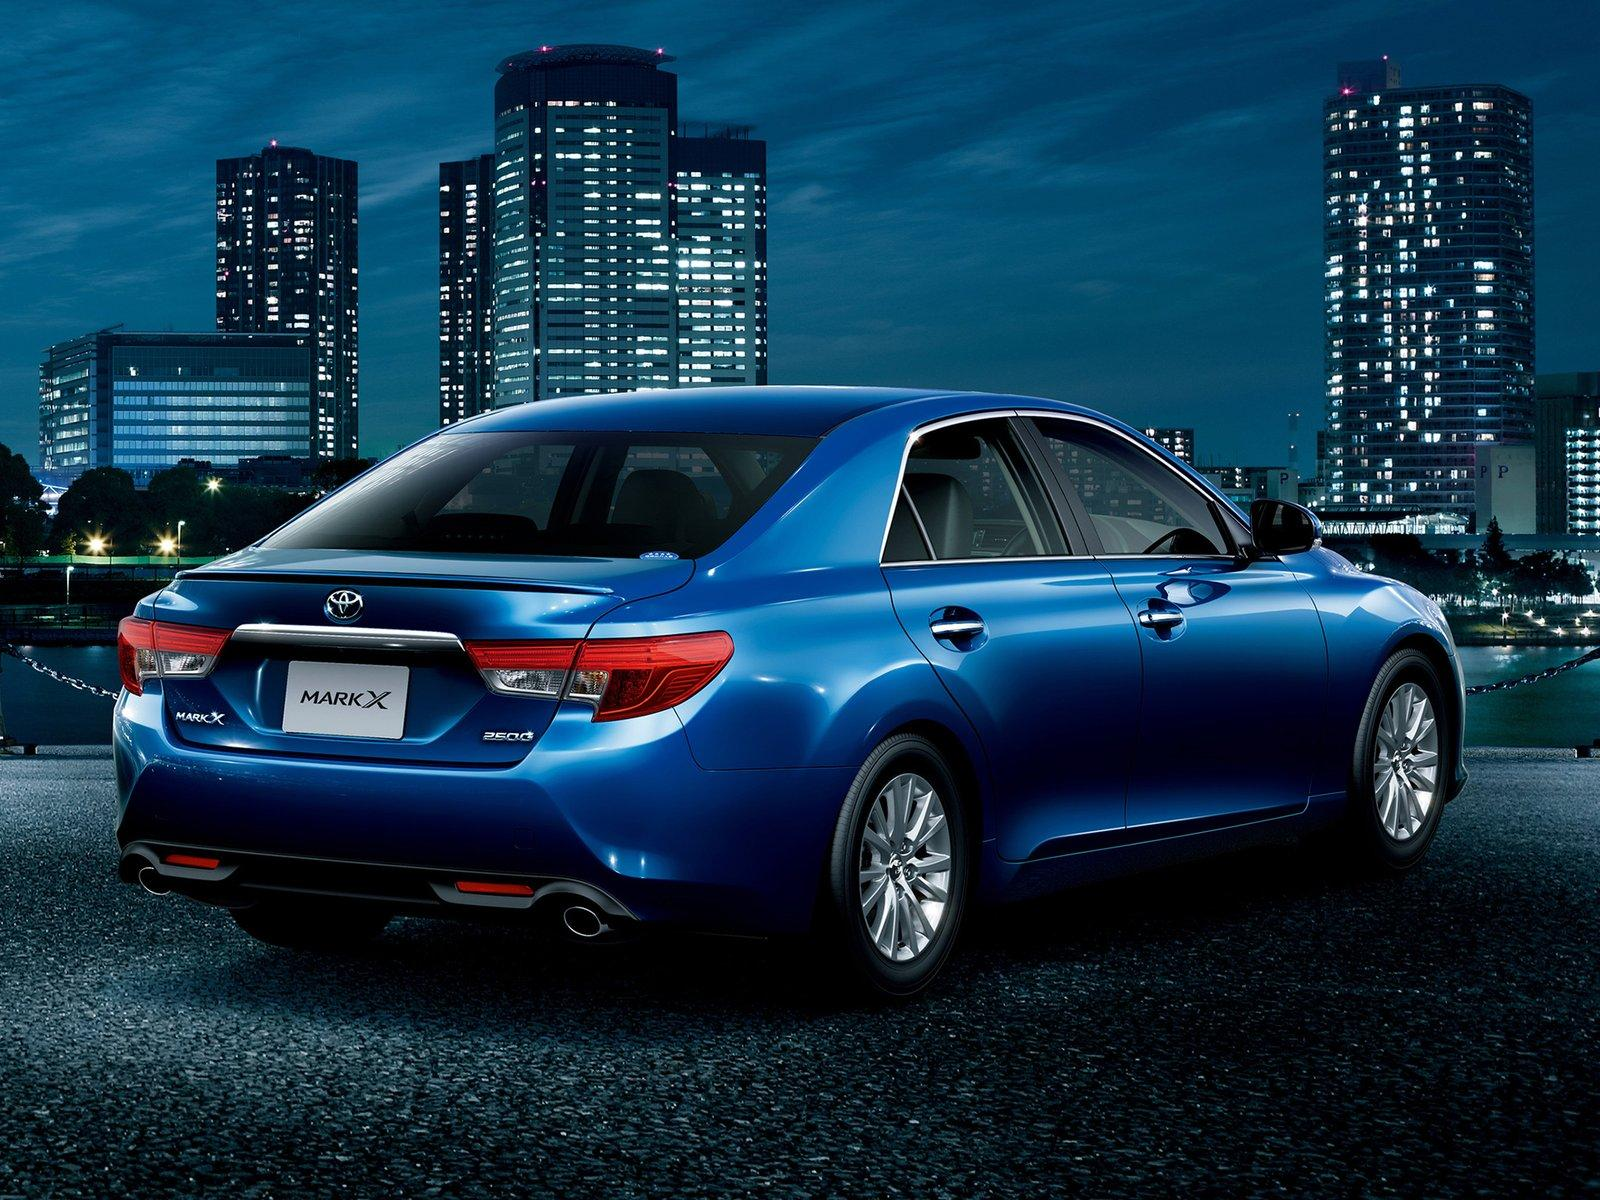 Toyota Tacoma Diesel >> 2013 Toyota Mark X Facelift - Japan-Only - autoevolution